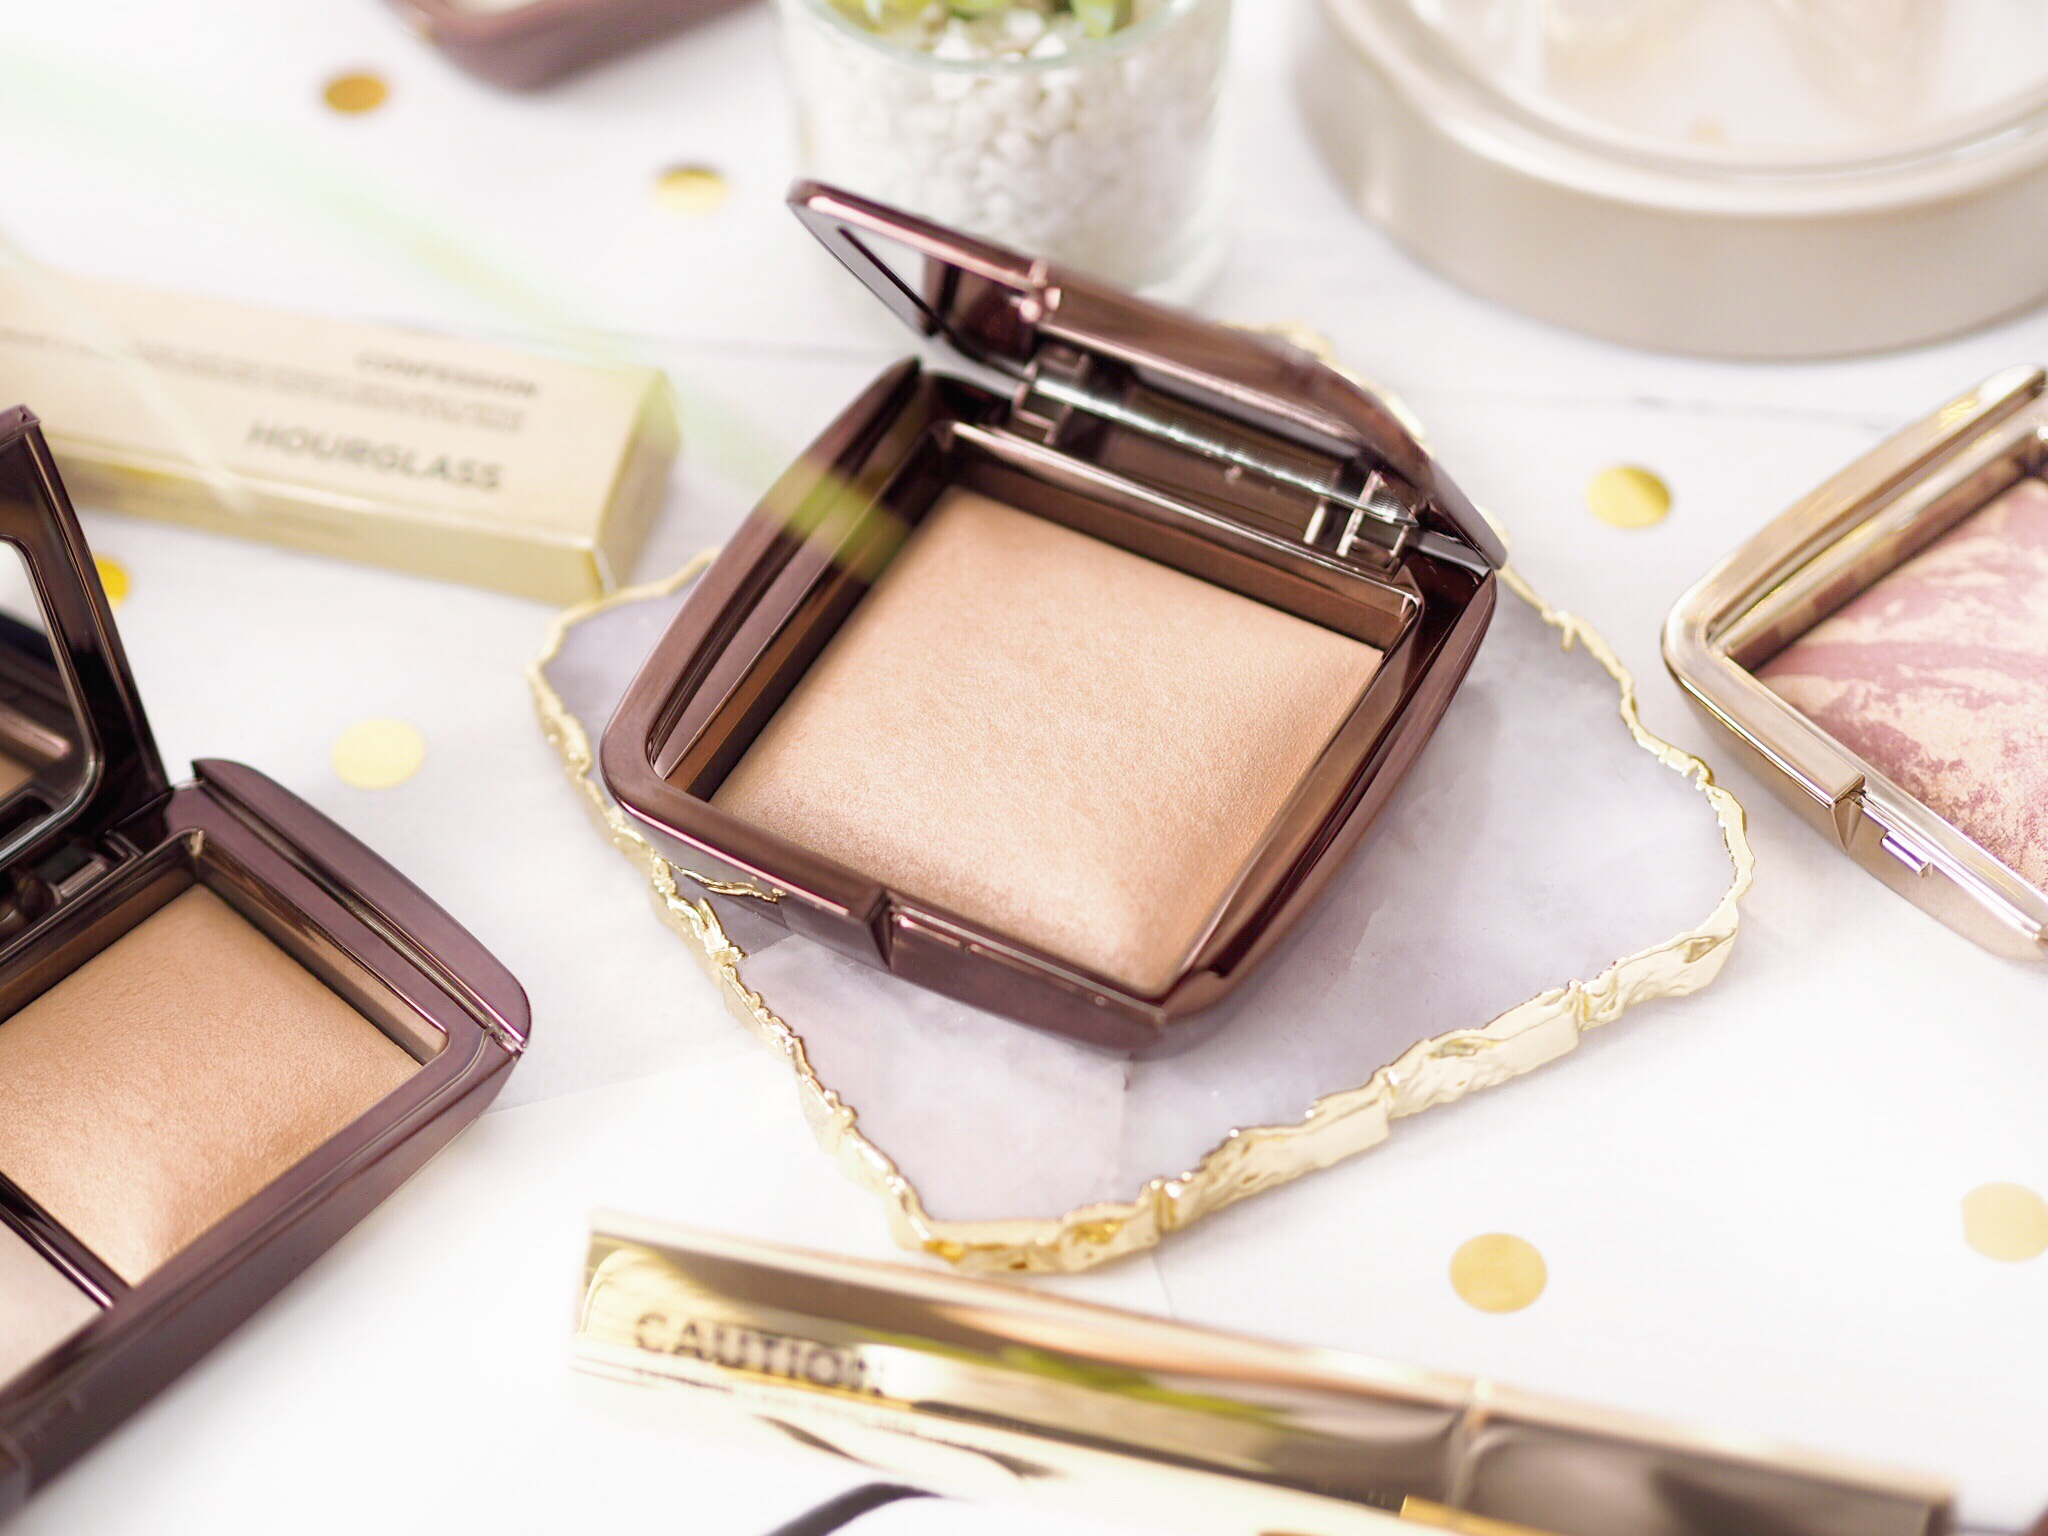 Hourglass Ambient Lighting Powder in shade Luminous Light Review